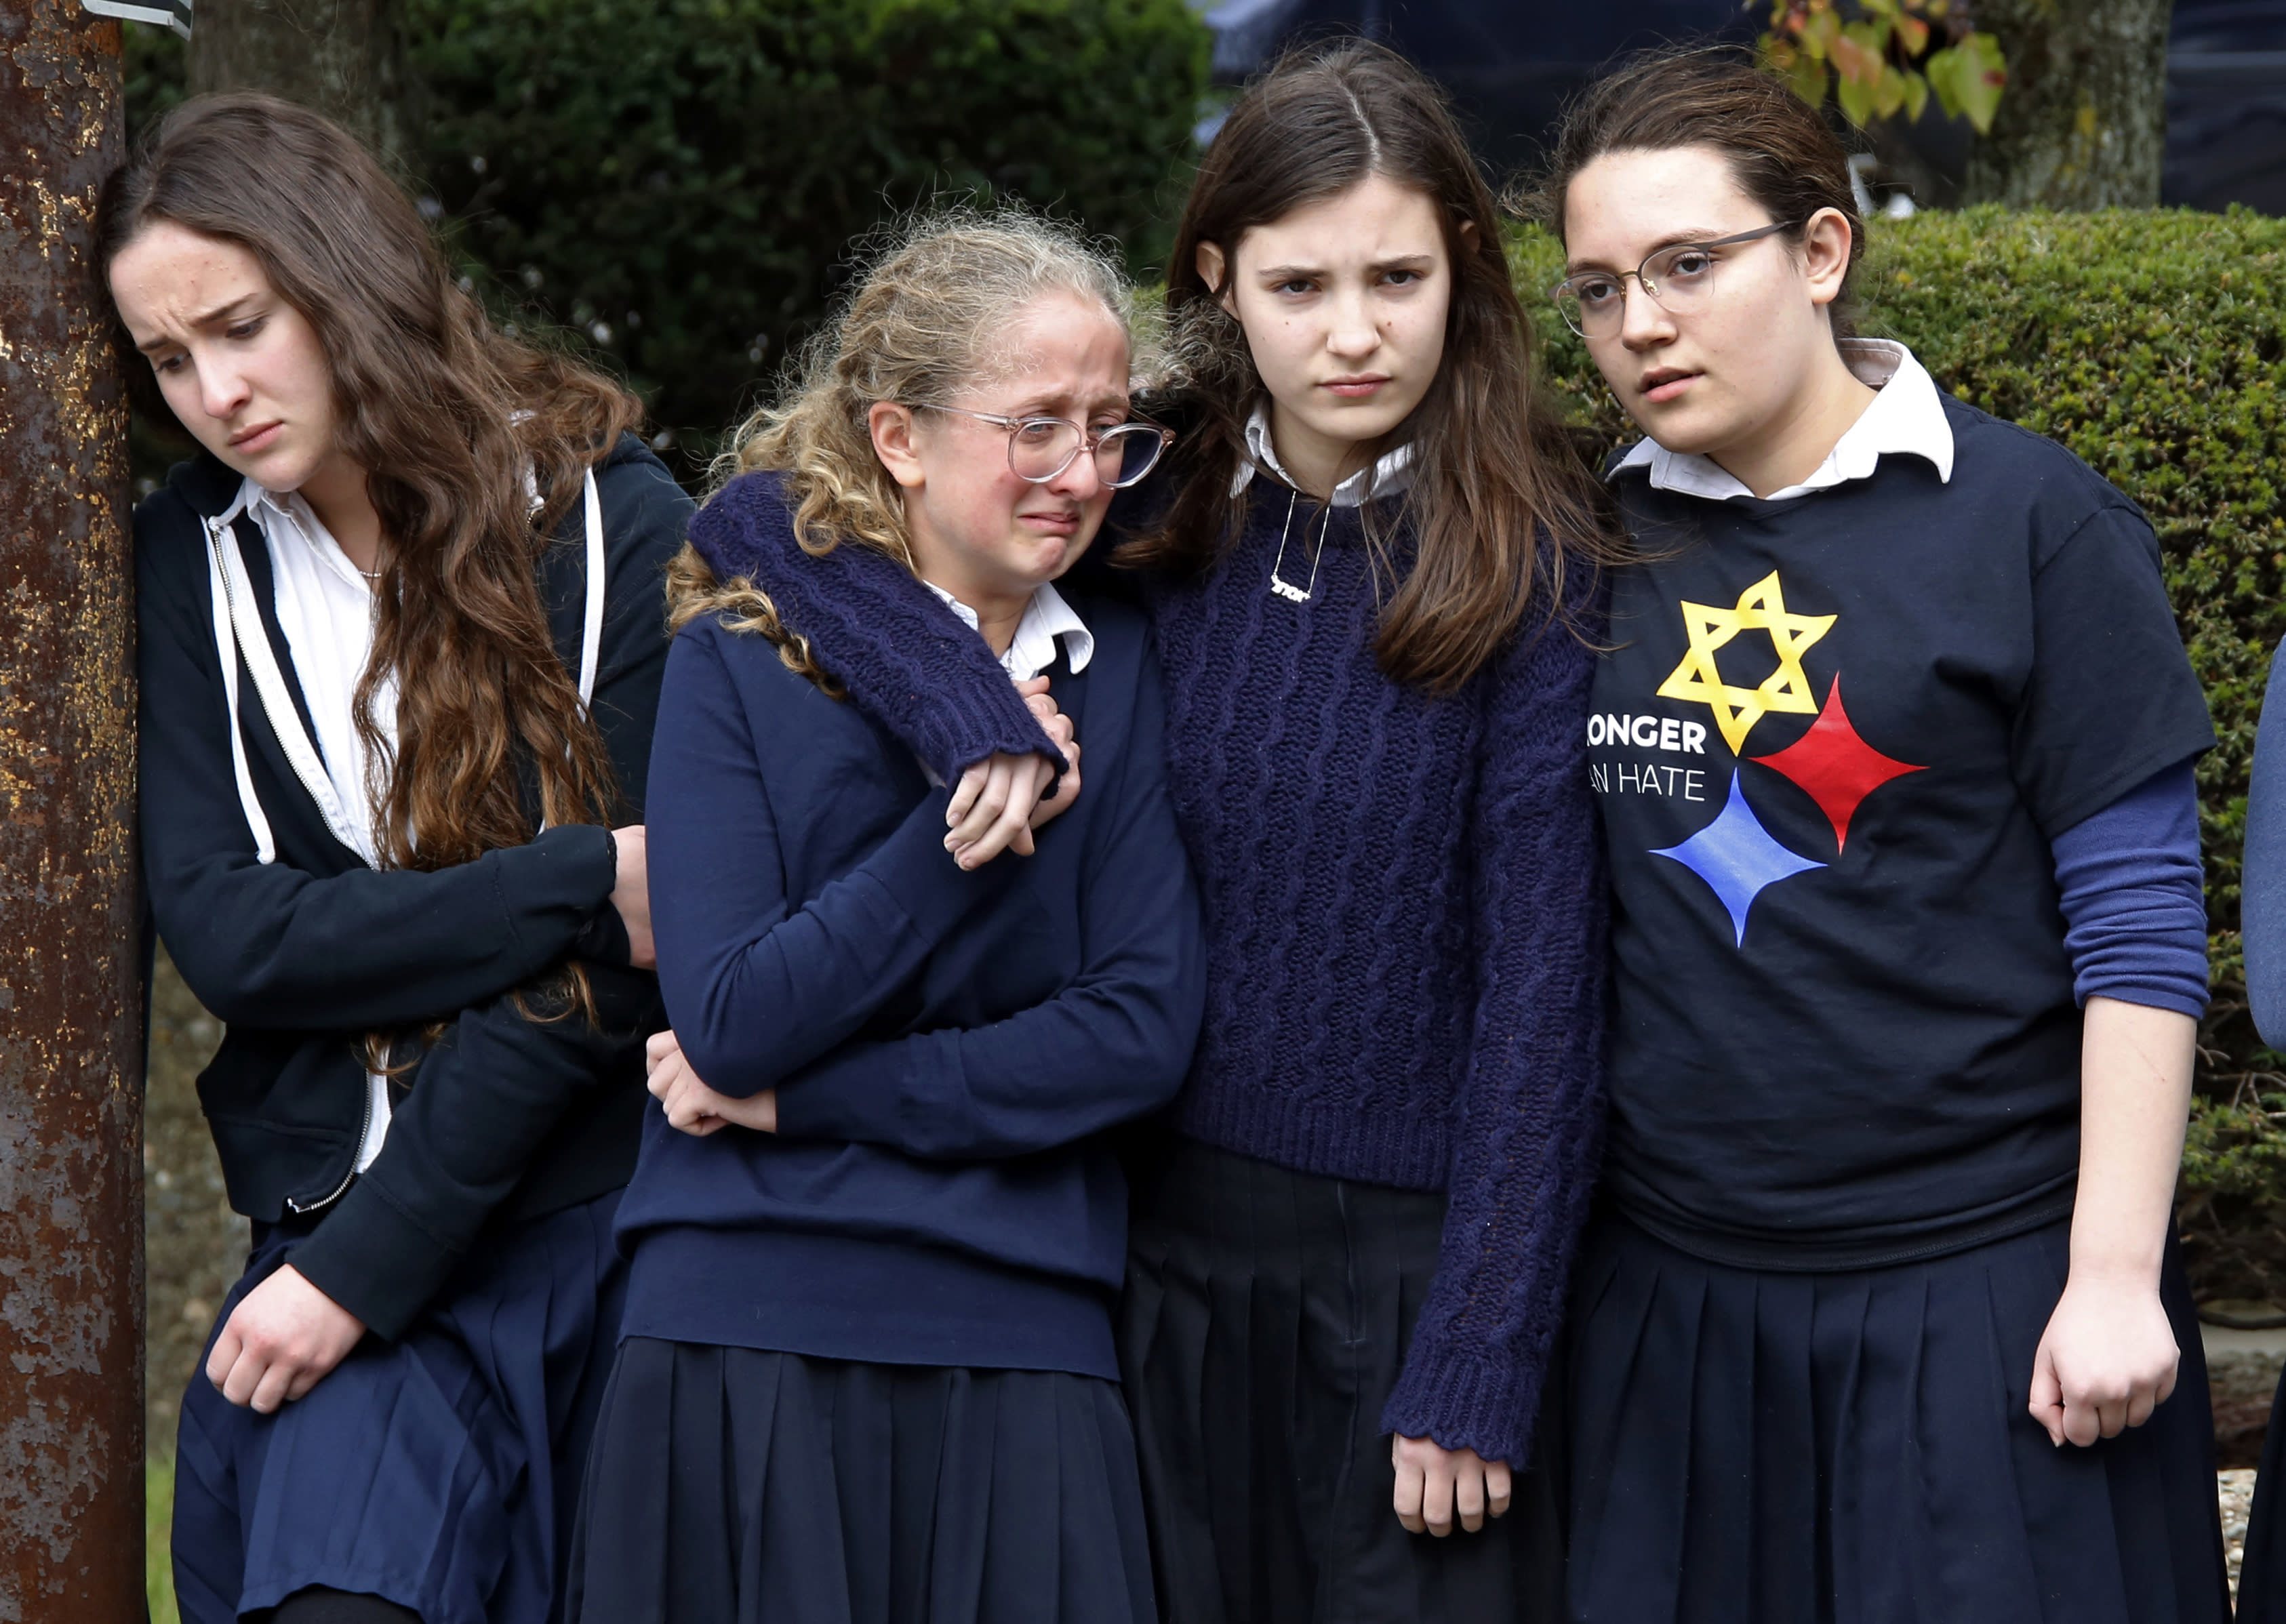 <p>Students from the Yeshiva School in the Squirrel Hill neighborhood of Pittsburgh, pay their respects as the funeral procession for Dr. Jerry Rabinowitz passes their school en route to Homewood Cemetery following a funeral service at the Jewish Community Center, Tuesday Oct. 30, 2018. Rabinowitz was one of people killed while worshipping at the Tree of Life synagogue on Saturday, Oct. 27, 2018. (Photo: Gene J. Puskar/AP) </p>